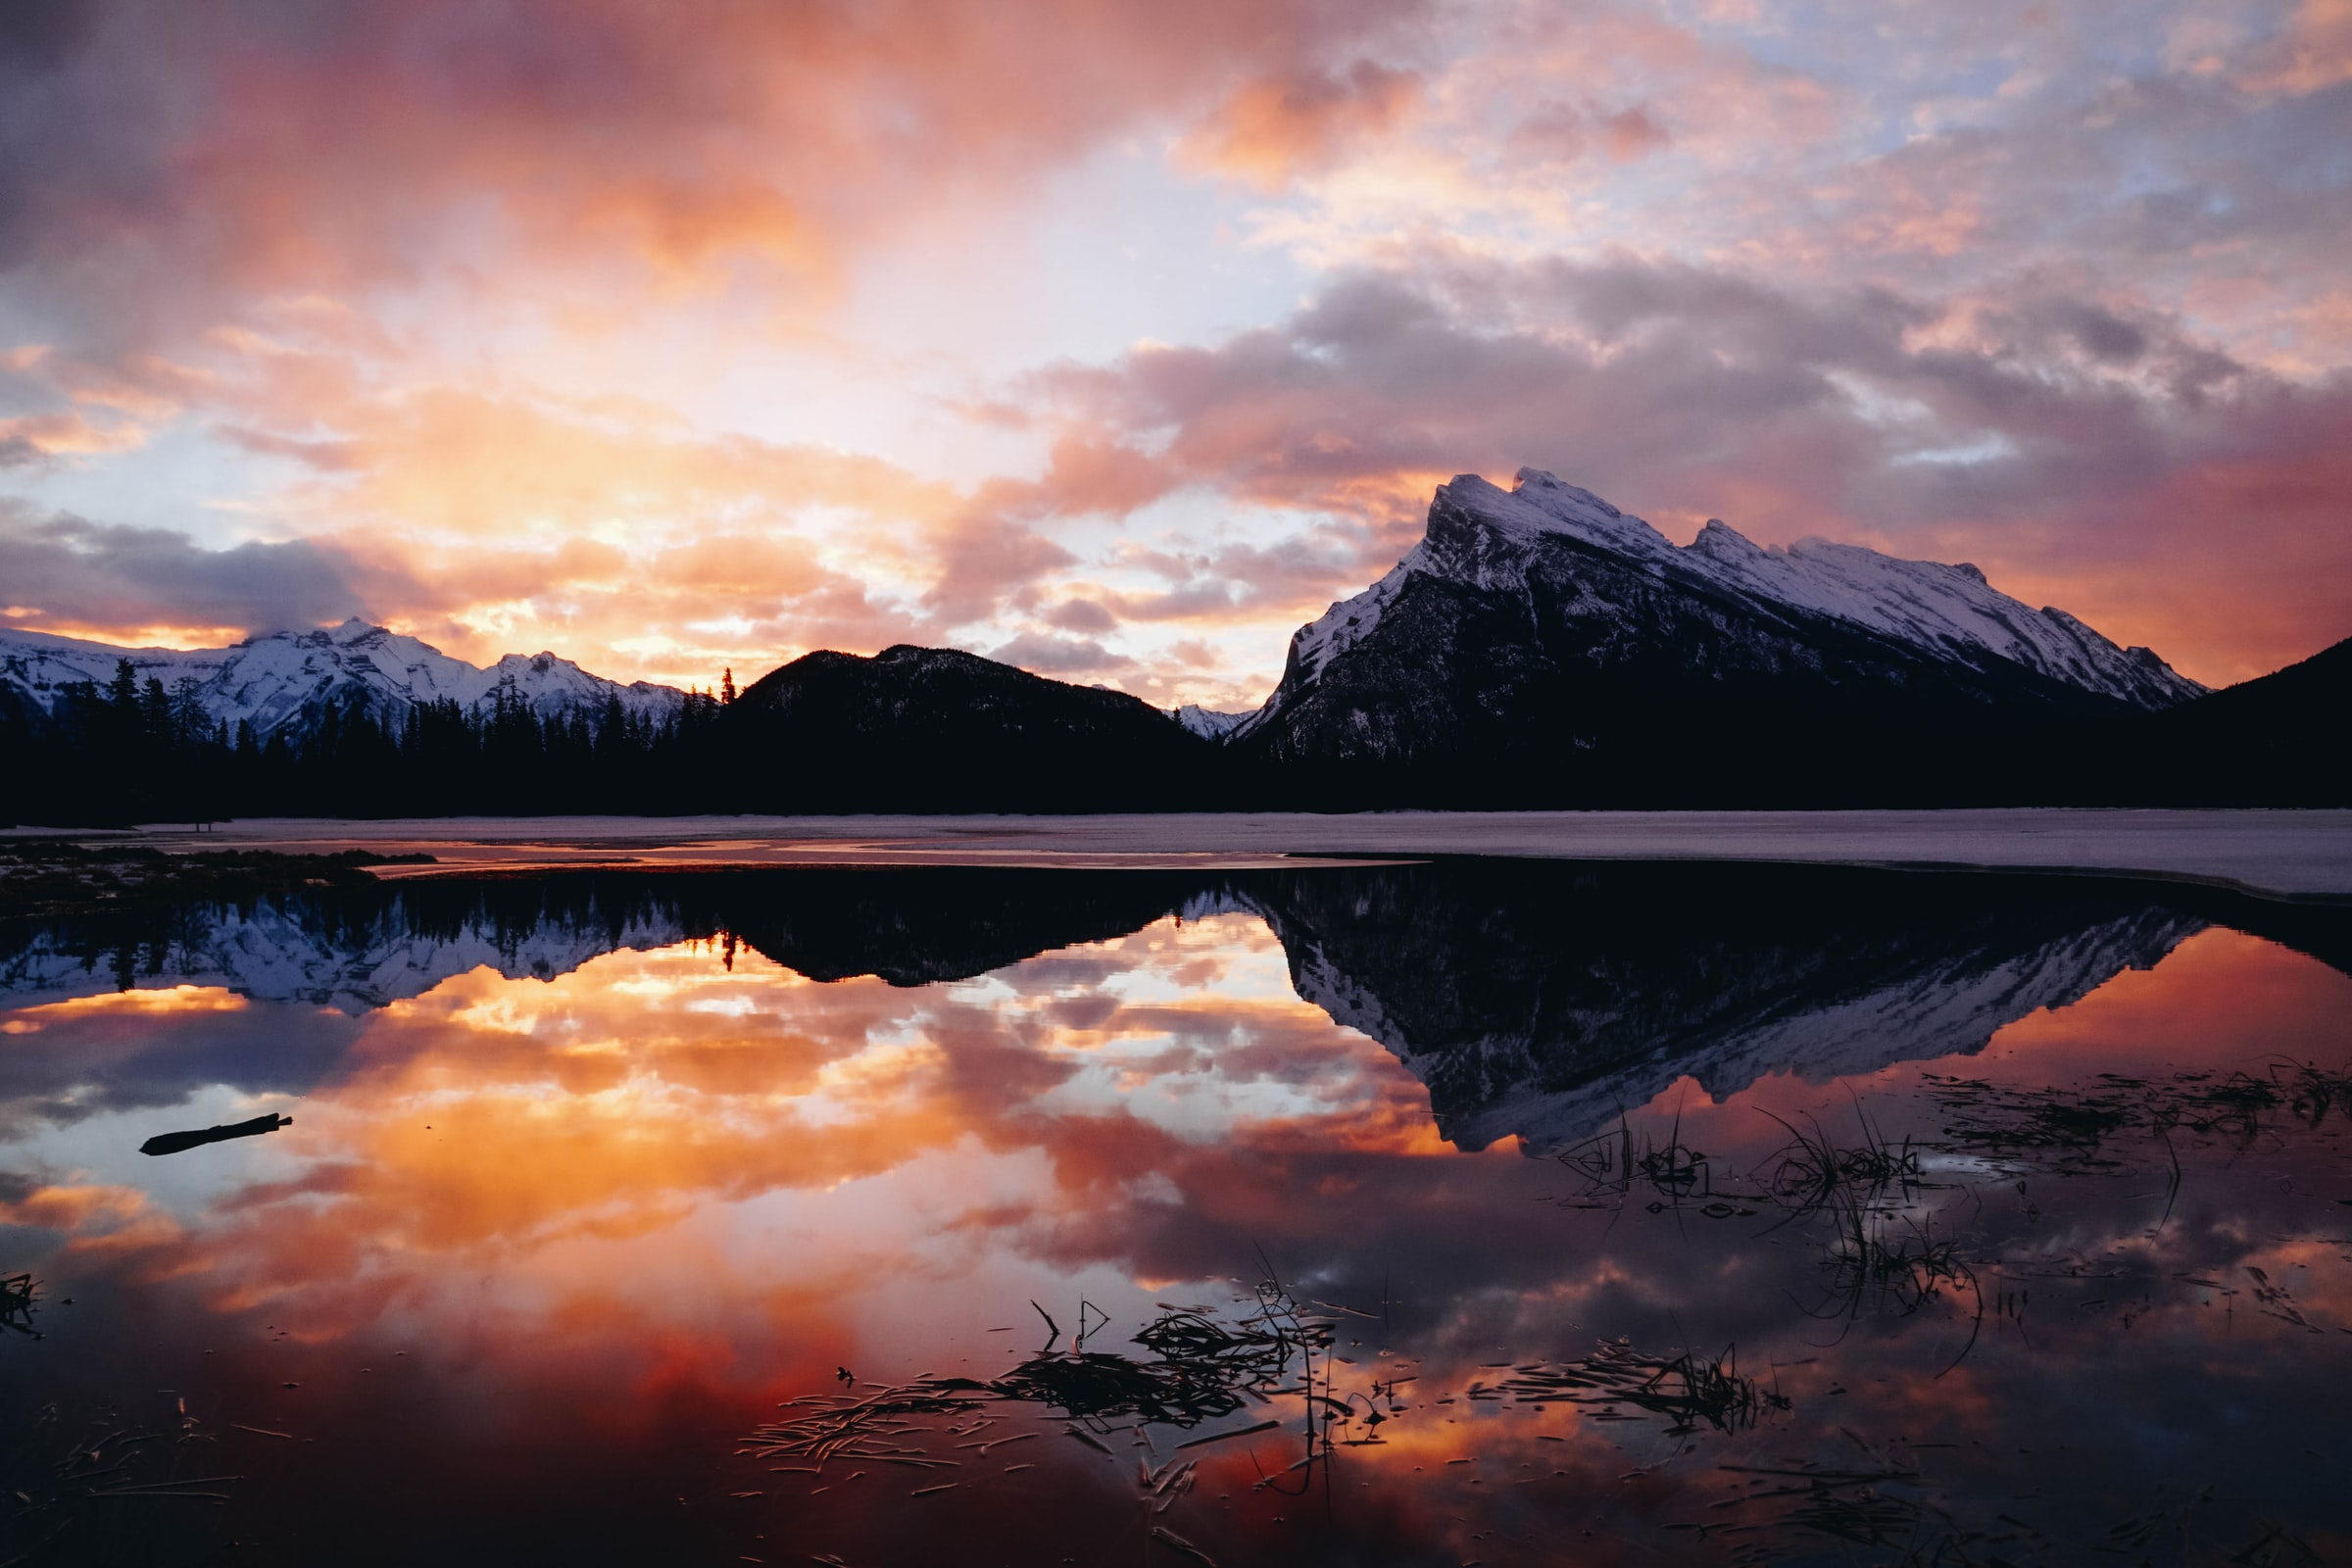 The iconic Rundle Mountain reflecting in Vermillion Lakes during a colourful sunset is an iconic Canadian Rockies photograph